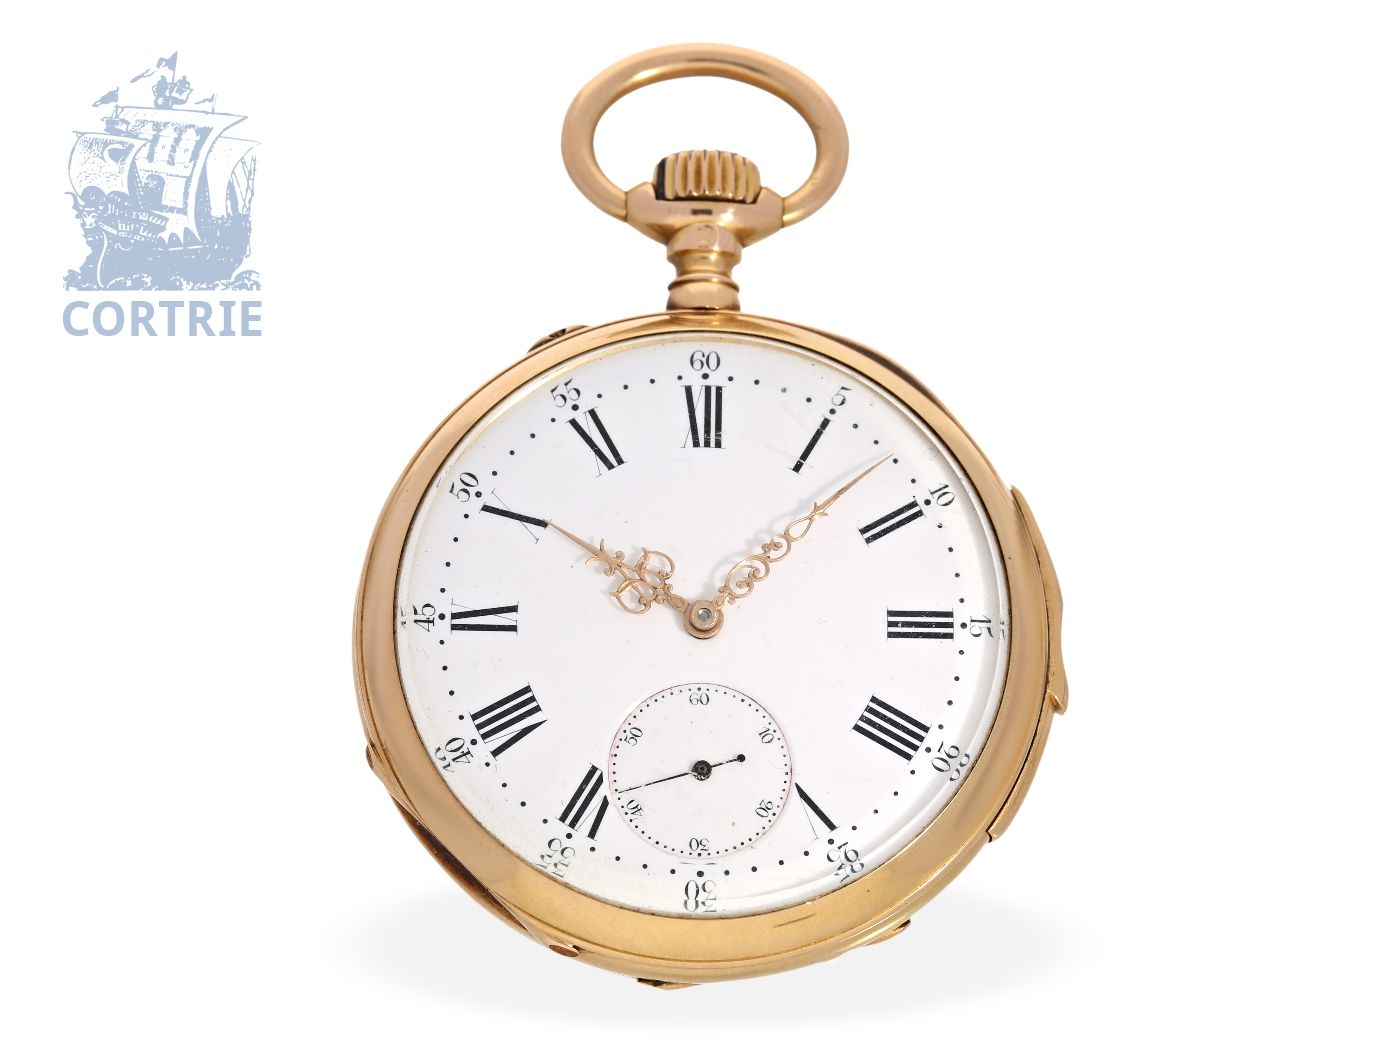 Pocket watch: very fine precision pocket watch repeater, prime quality DEMI CHRONOMÈTRE, Dubois & Leroy Le Locle ca. 1880-